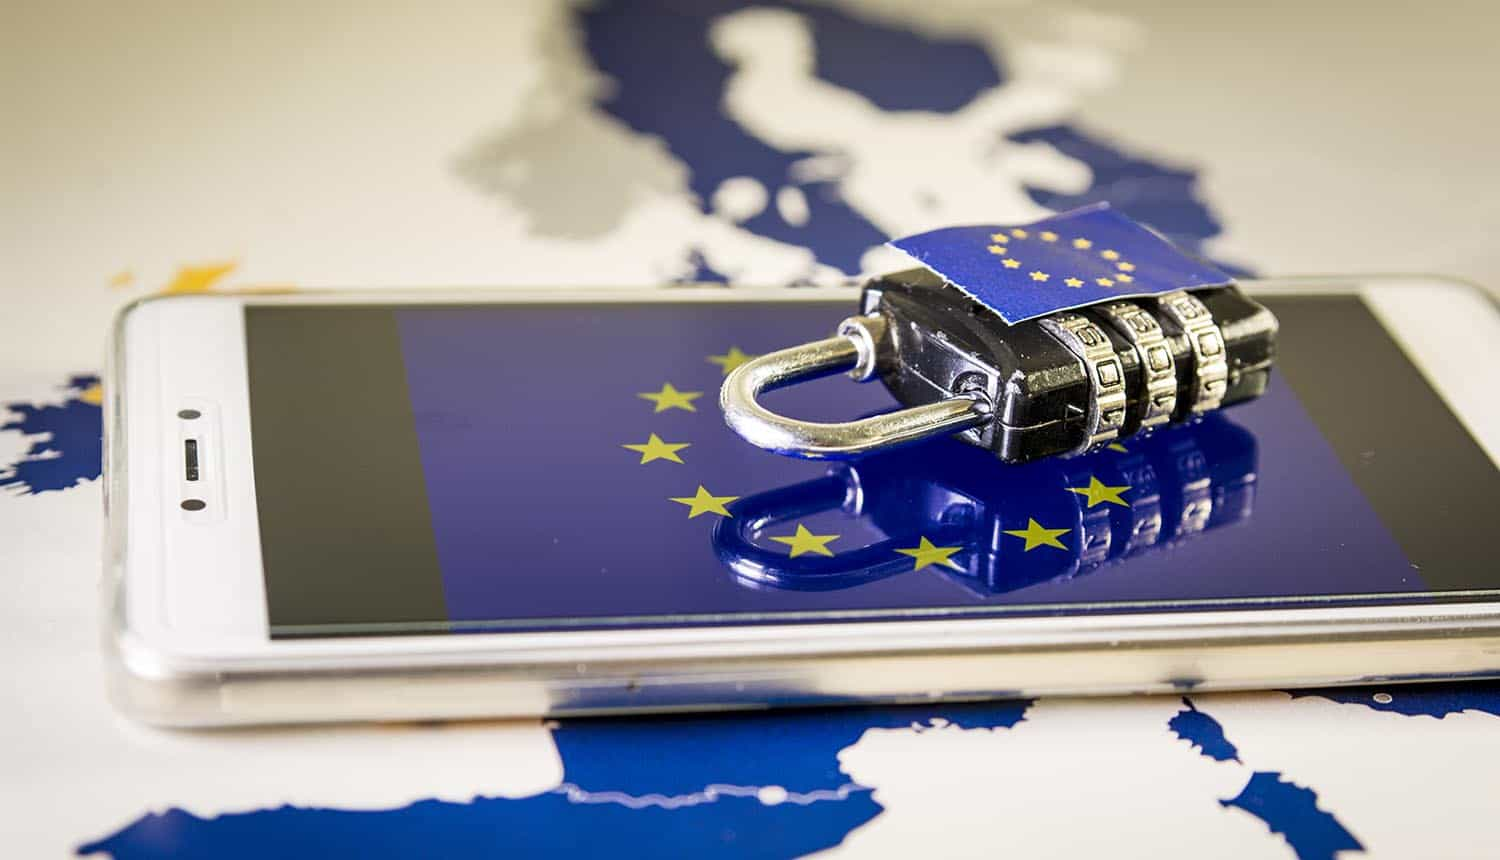 Padlock over a smartphone and EU map showing GDPR complaints on cookie banners